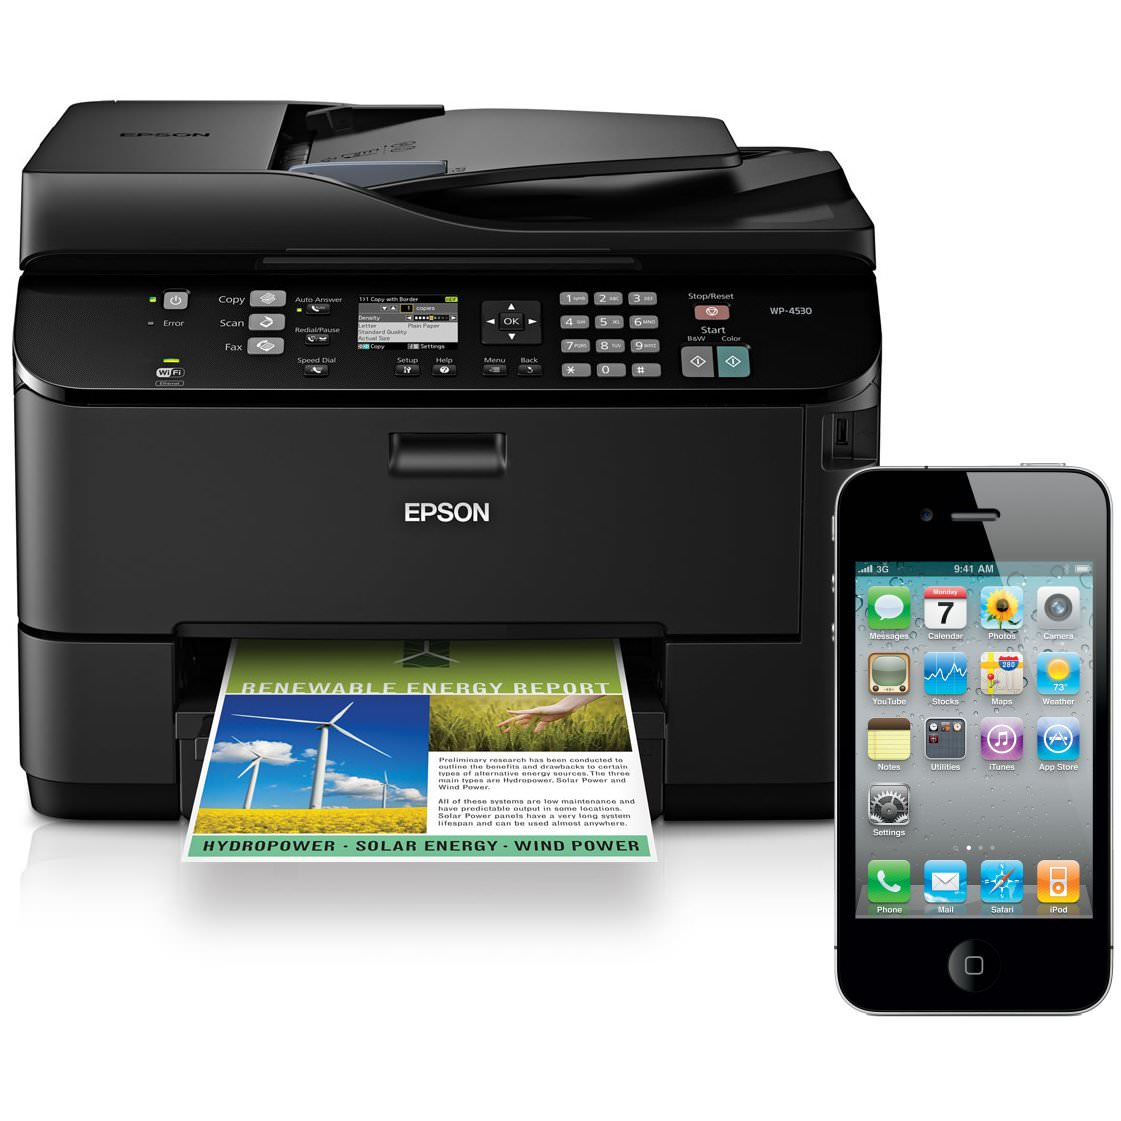 The Best Printer Apps for Android - Dignited